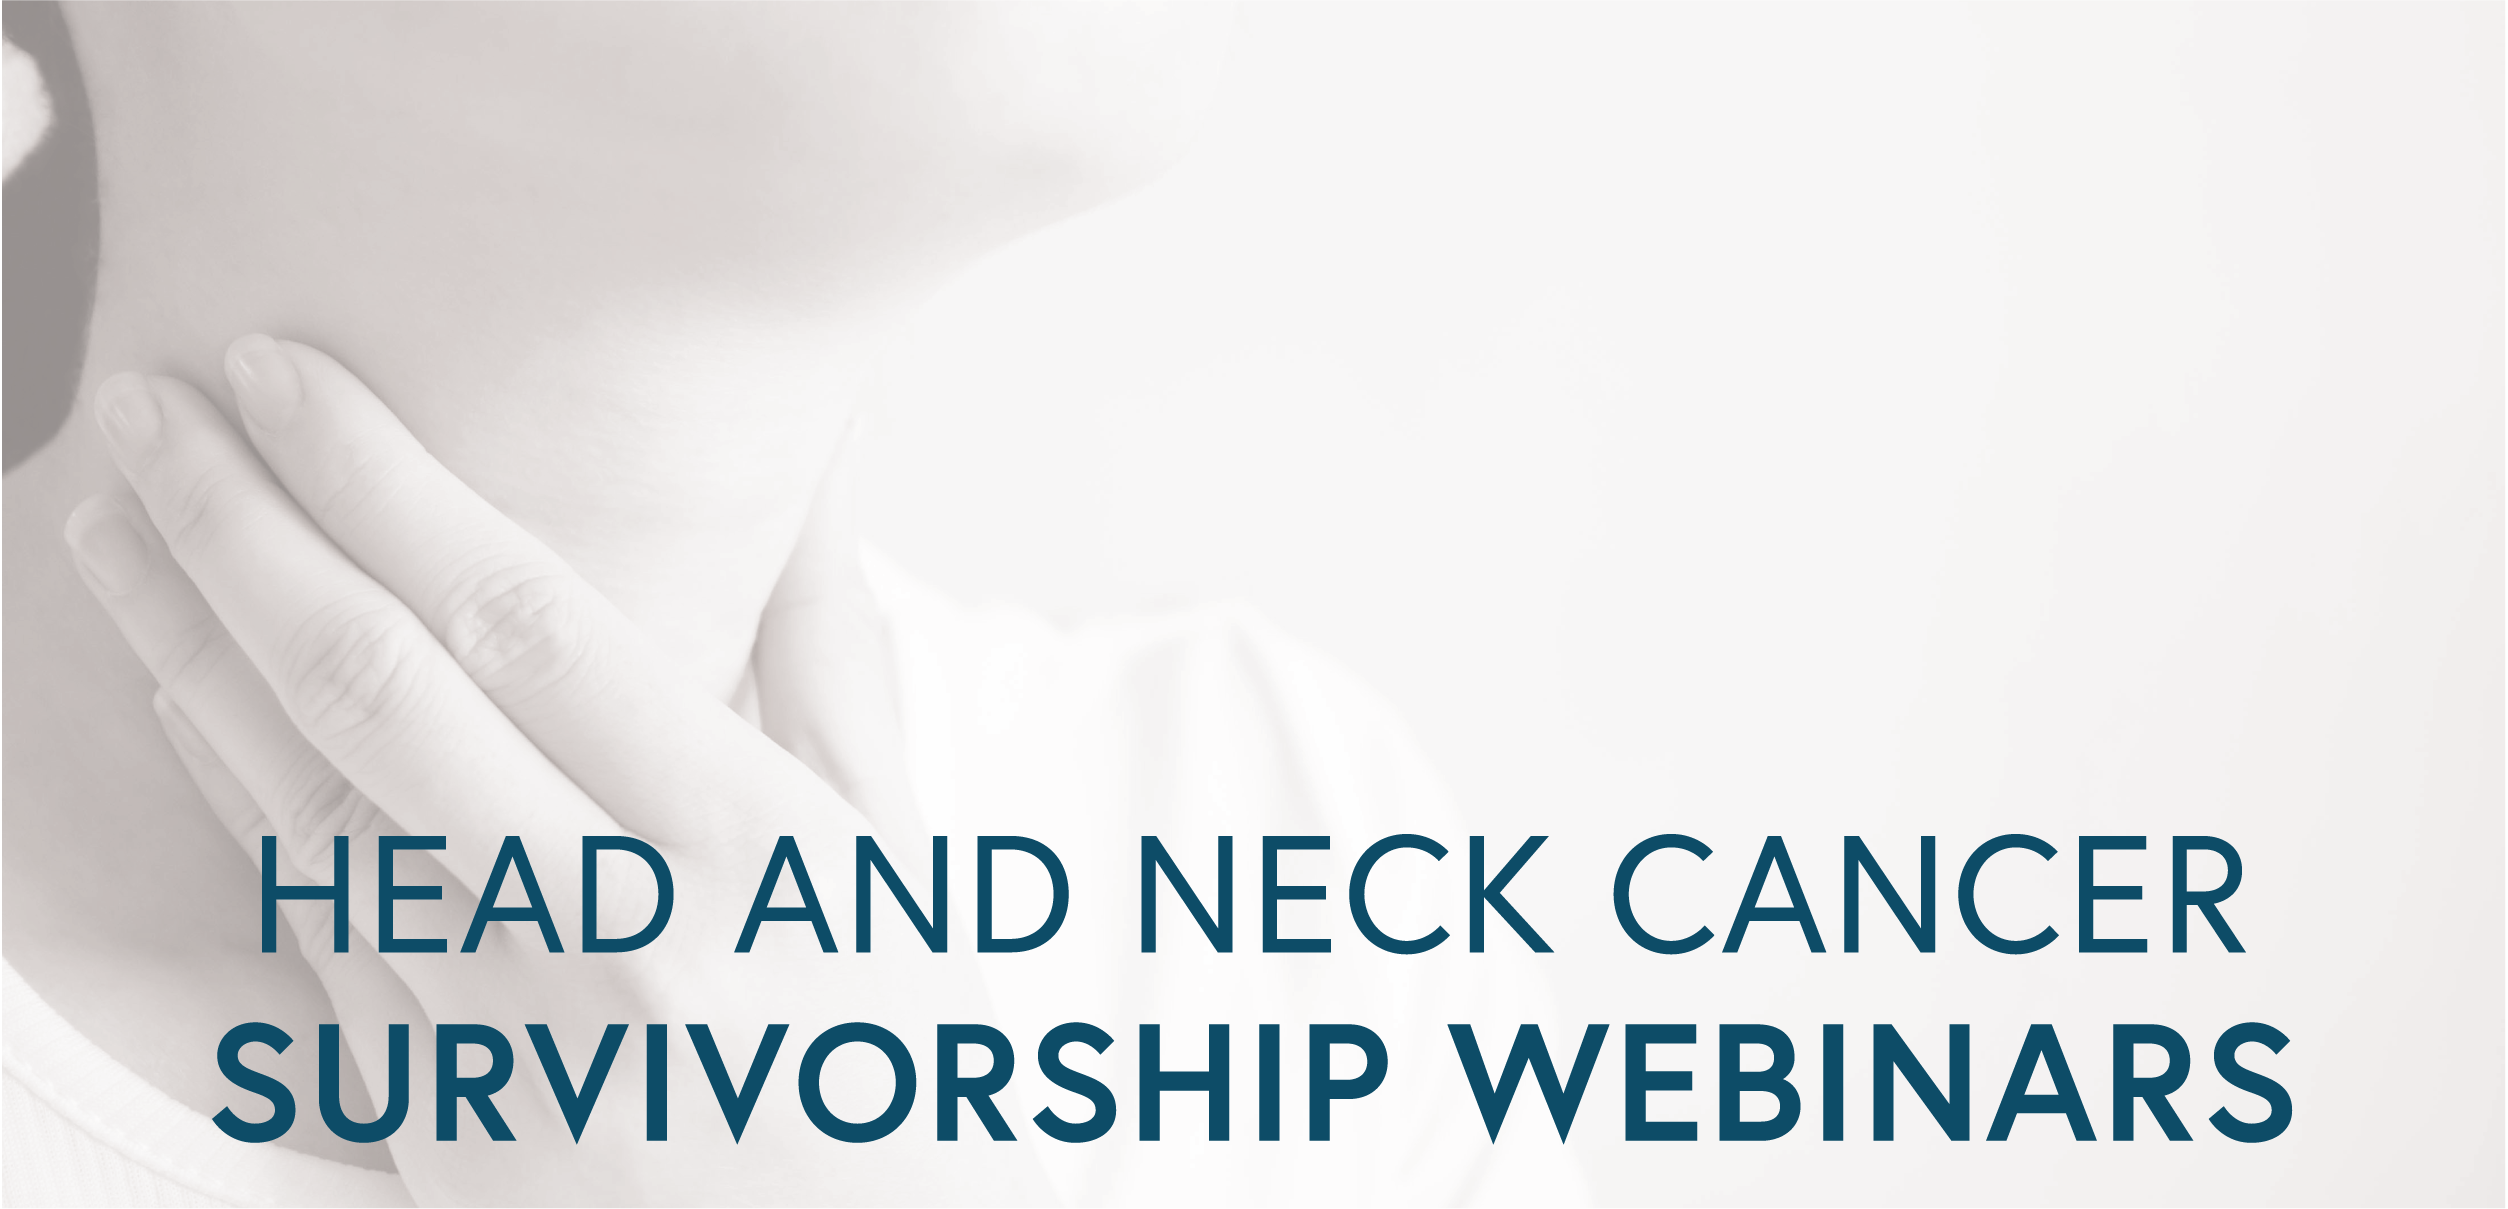 Head and Neck Cancer Survivorship Webinars